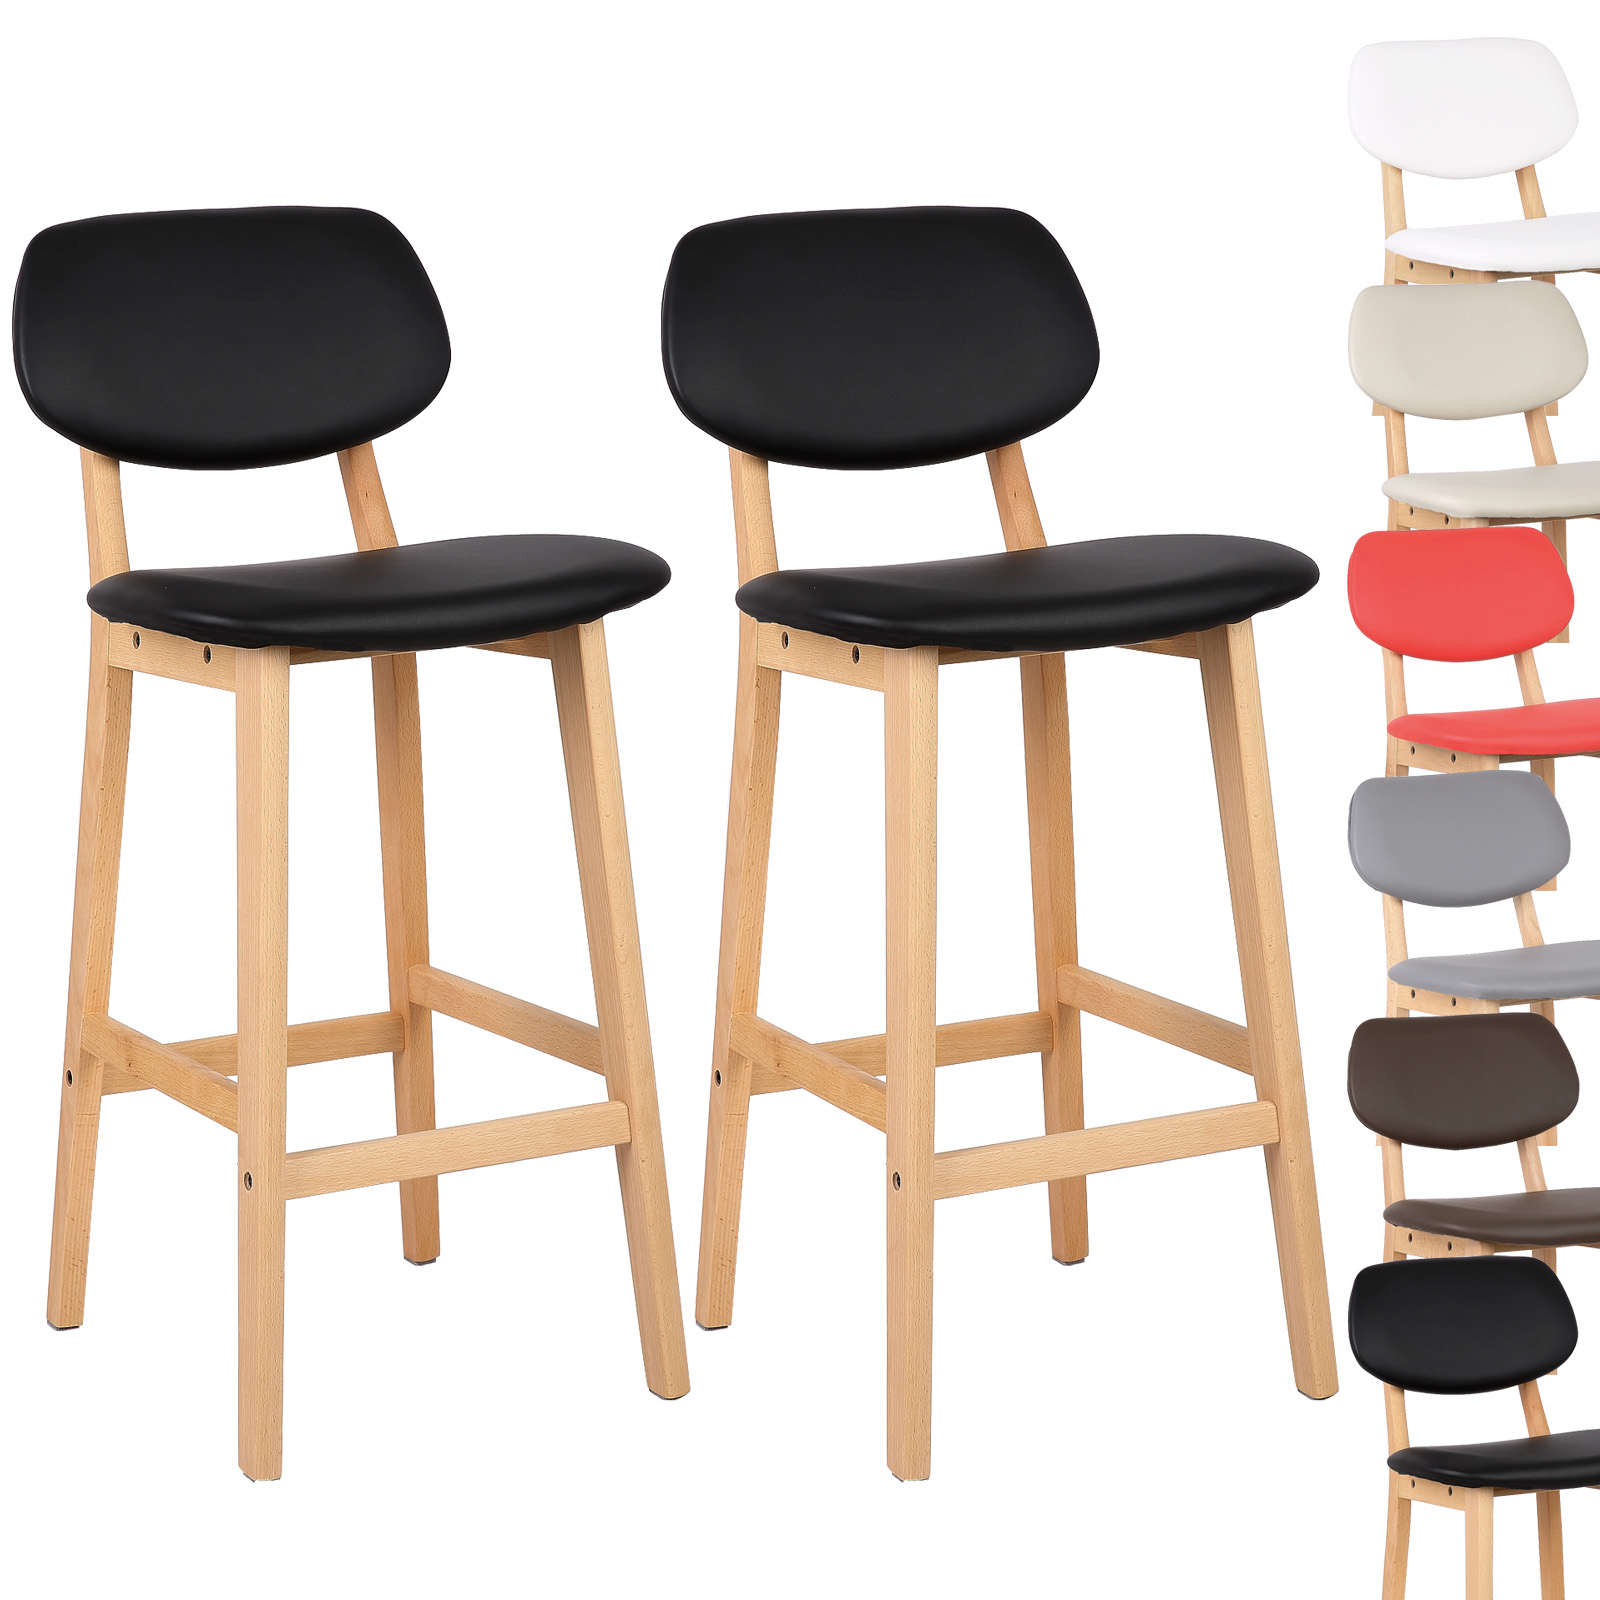 2 x tabouret de bar en cuir artificiel tabourets cuisine. Black Bedroom Furniture Sets. Home Design Ideas